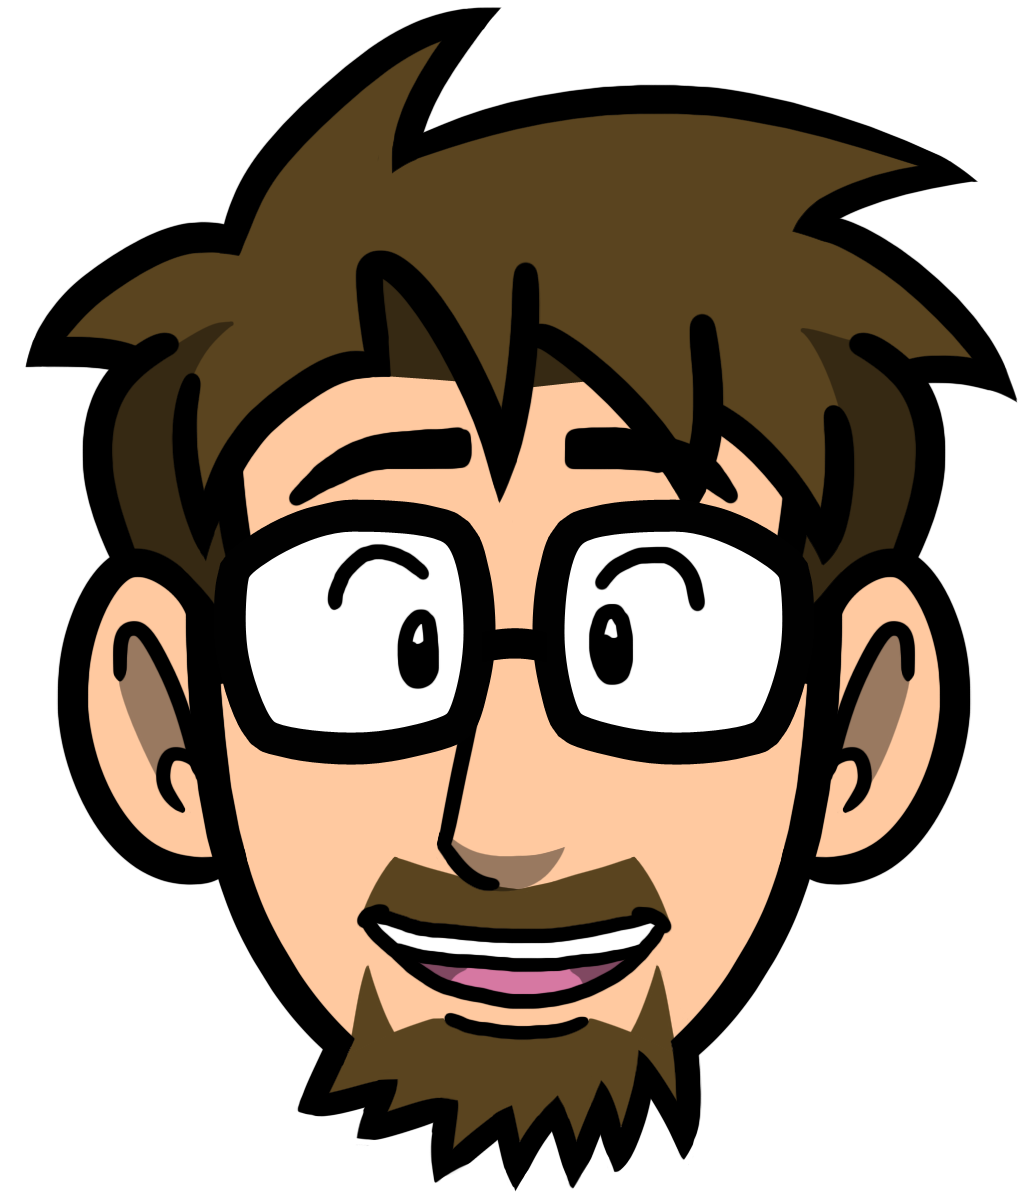 Game clipart game theory. Image head png the